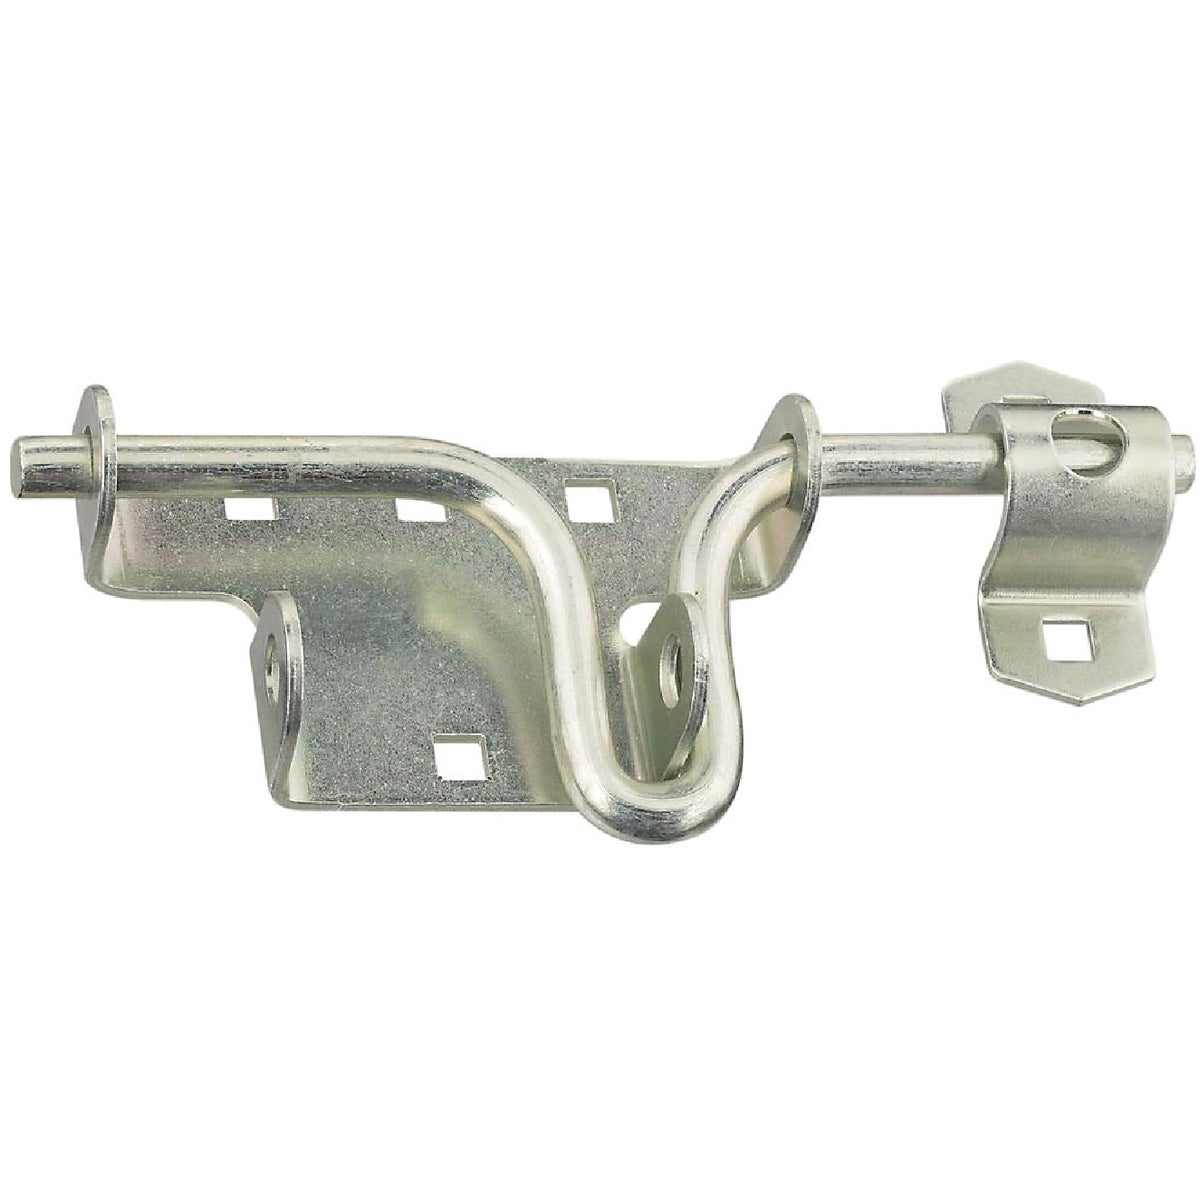 ZINC SLIDE BOLT LATCH